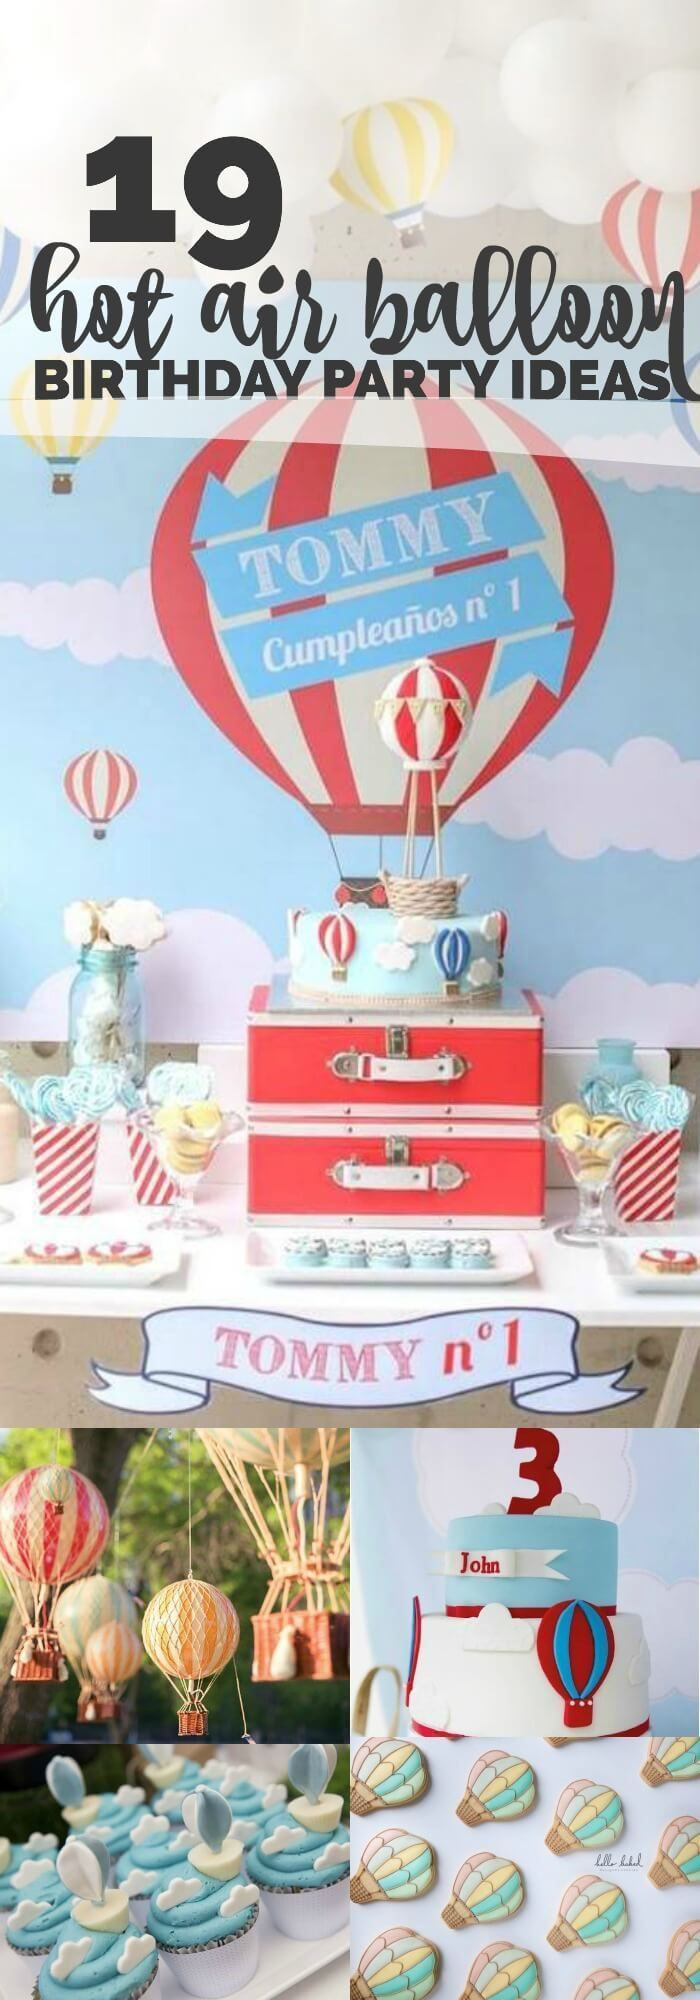 Best ideas about Birthday Decorations Near Me . Save or Pin Best 25 Balloon birthday themes ideas on Pinterest Now.